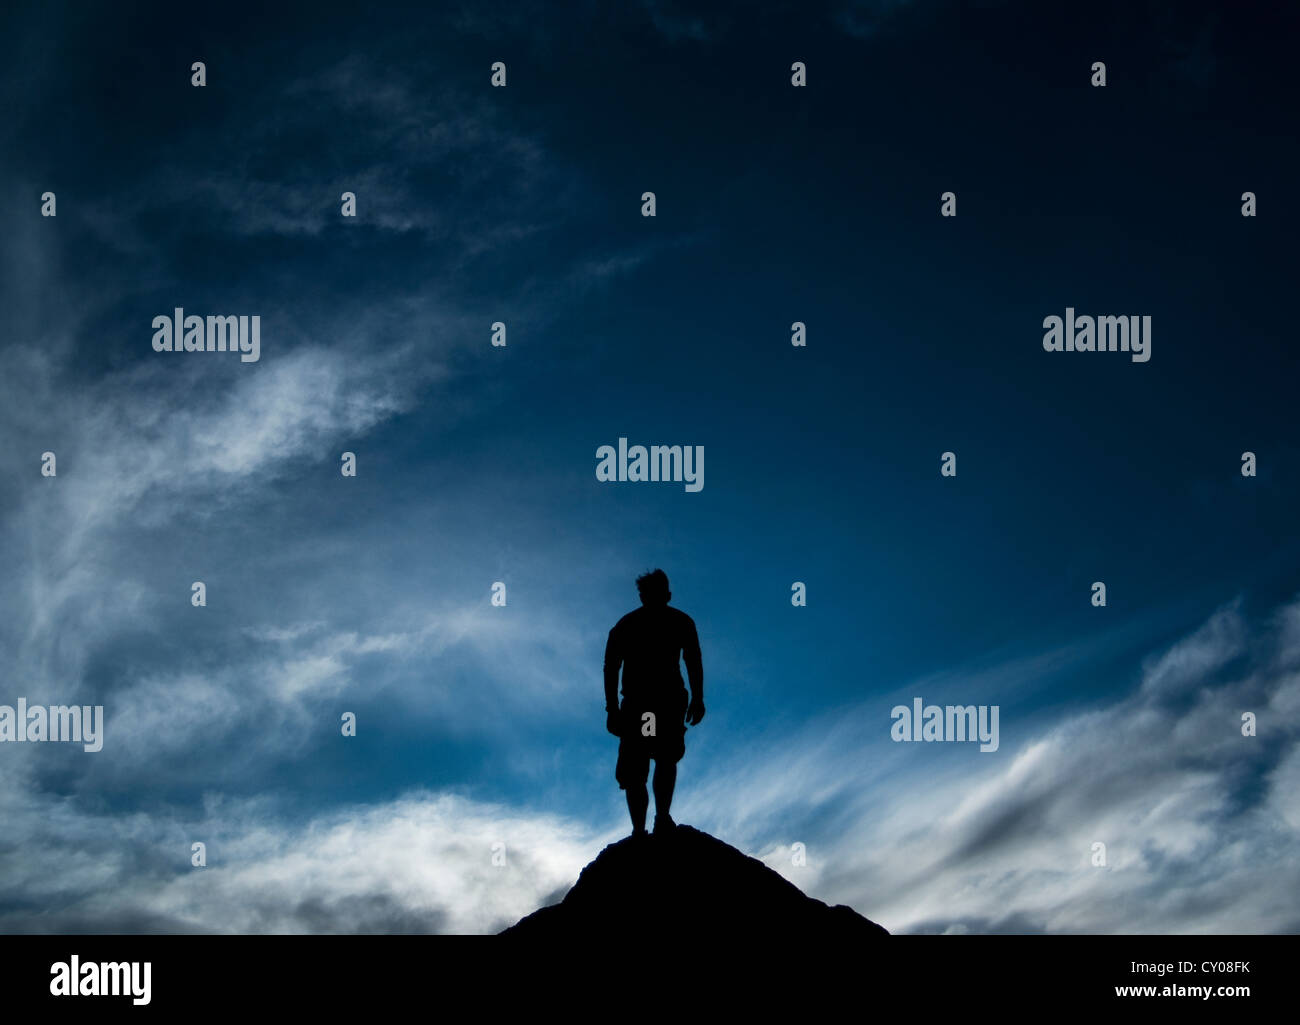 Silhouette of male figure standing on rock - Stock Image